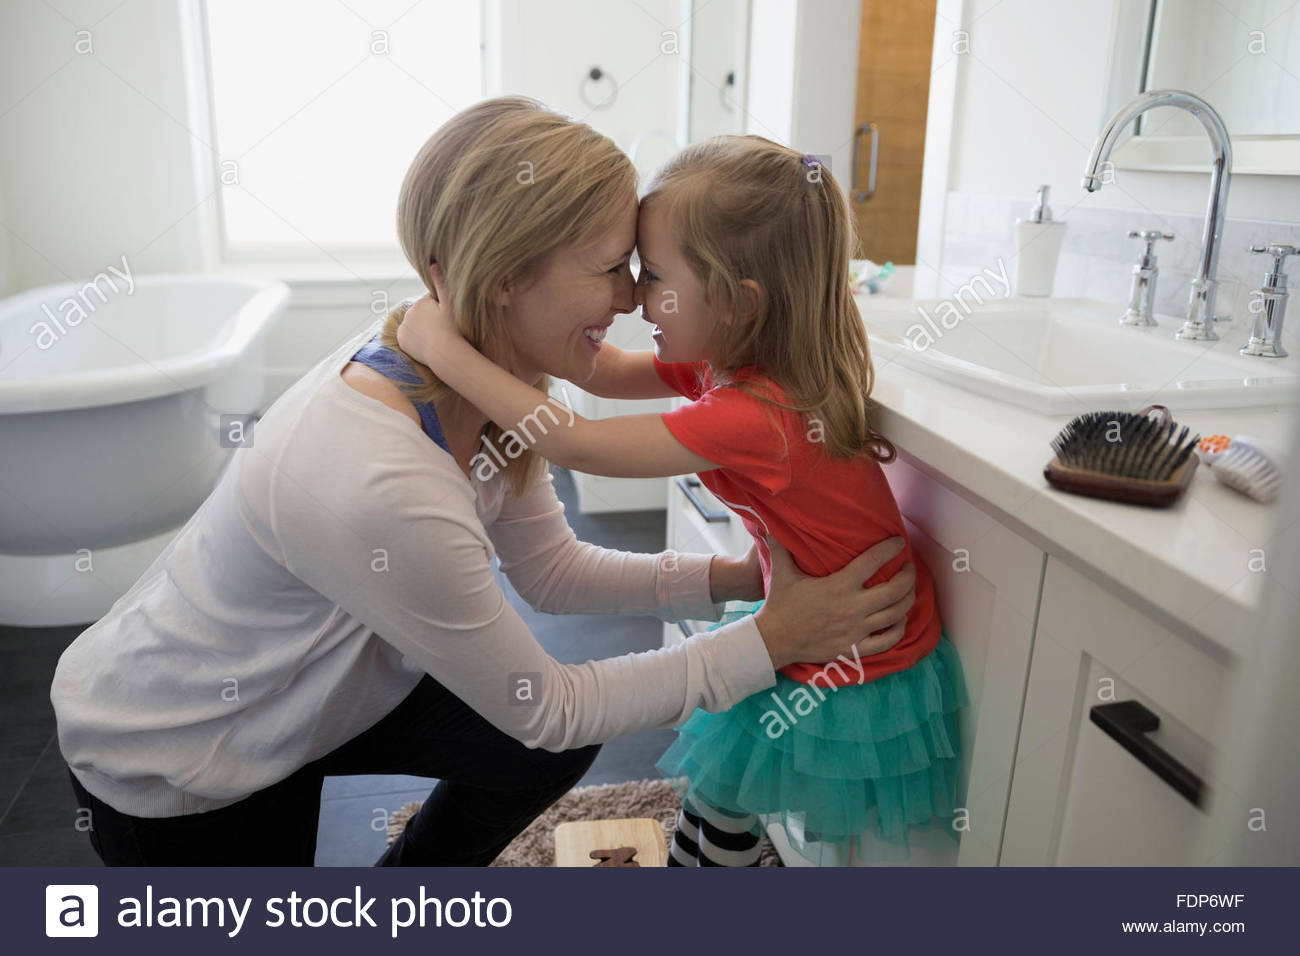 Affectionate mother and daughter rubbing noses in bathroom - Stock Image